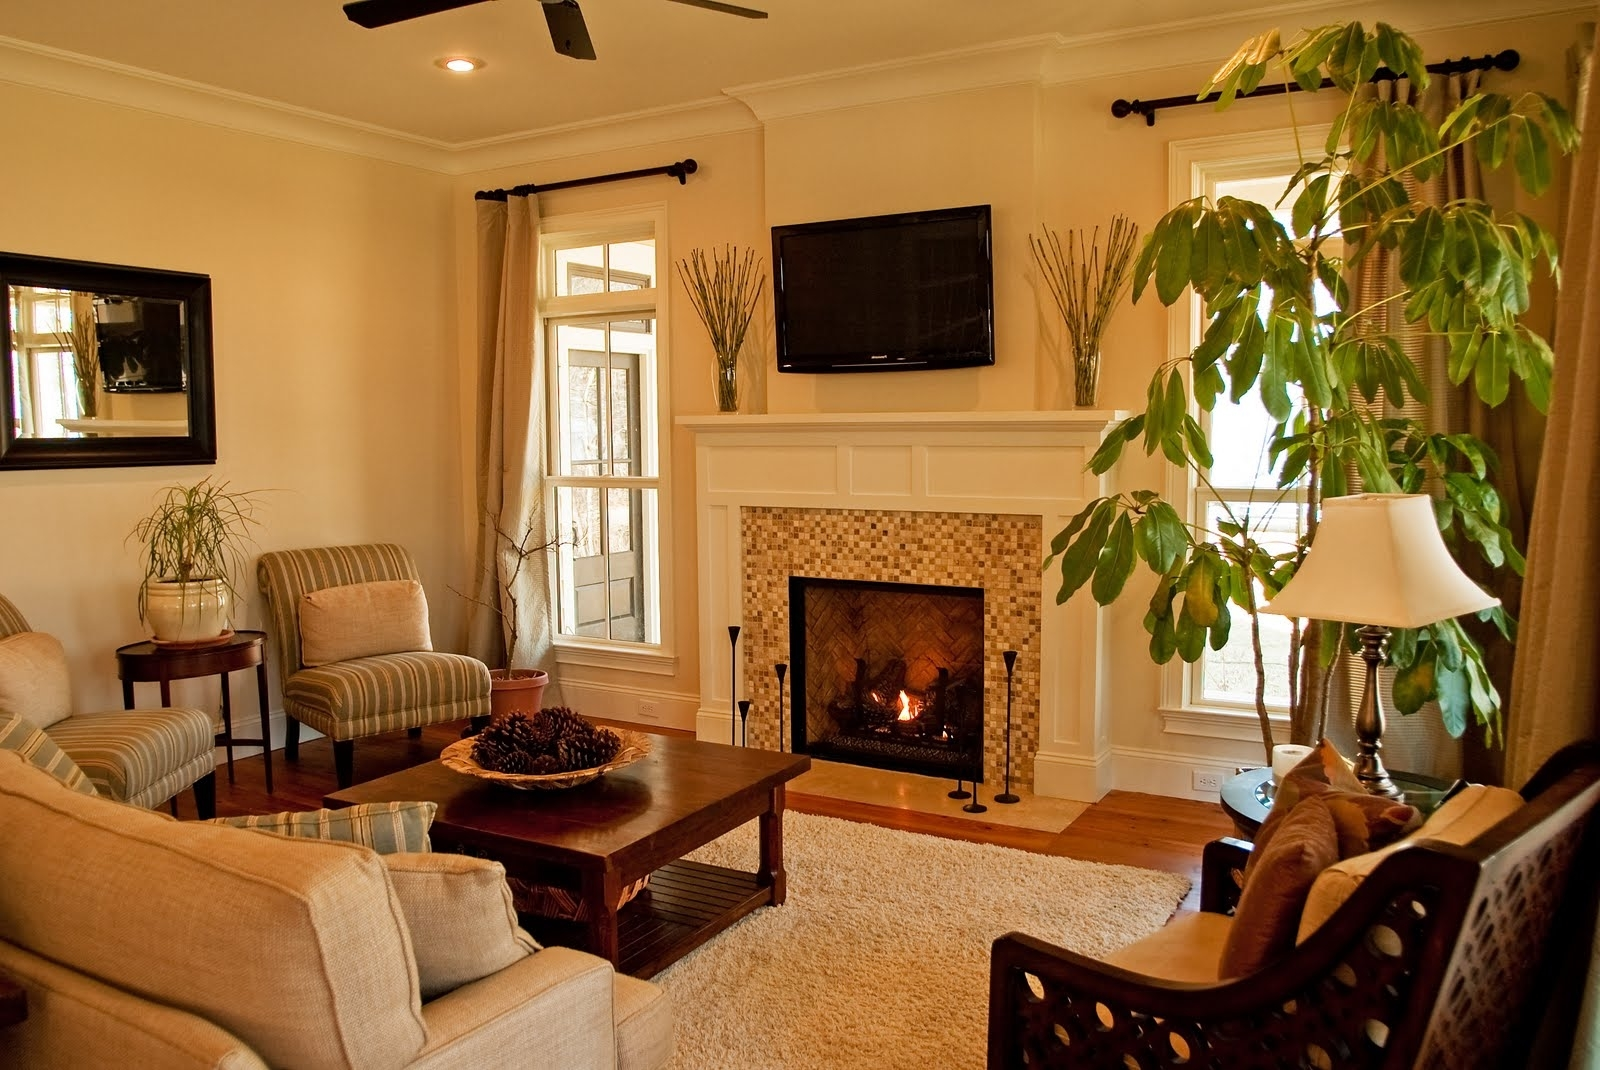 Country Style Mexican Living Room With Fireplace (Image 2 of 10)